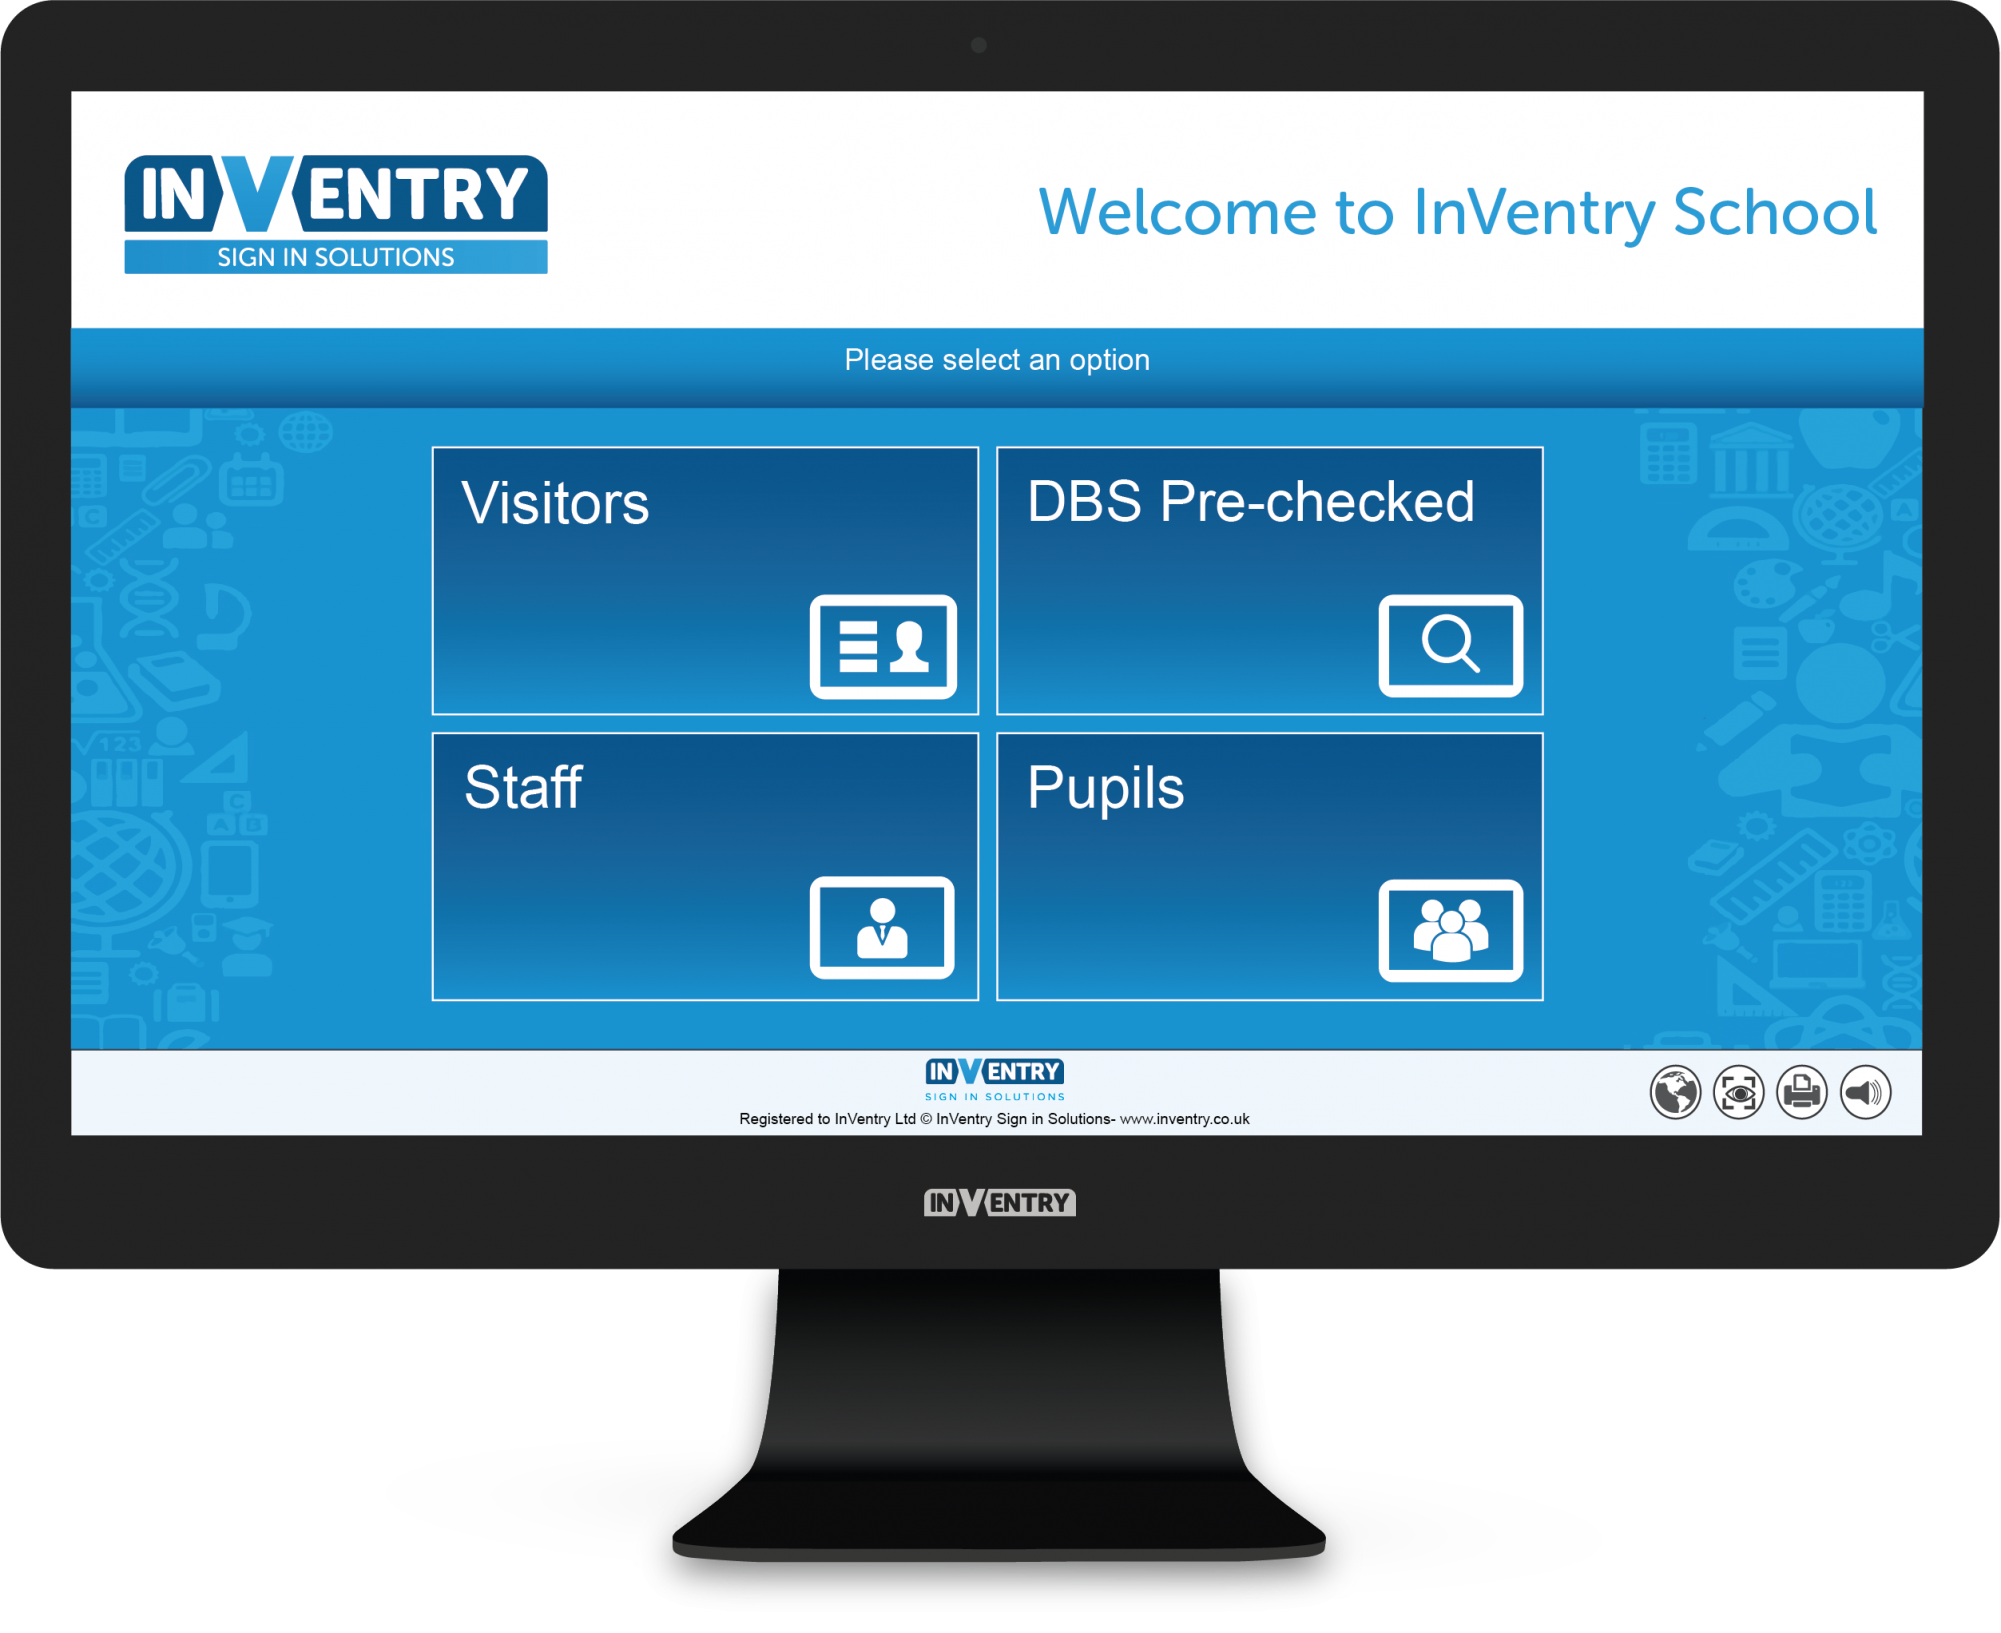 InVentry Sign In Solutions